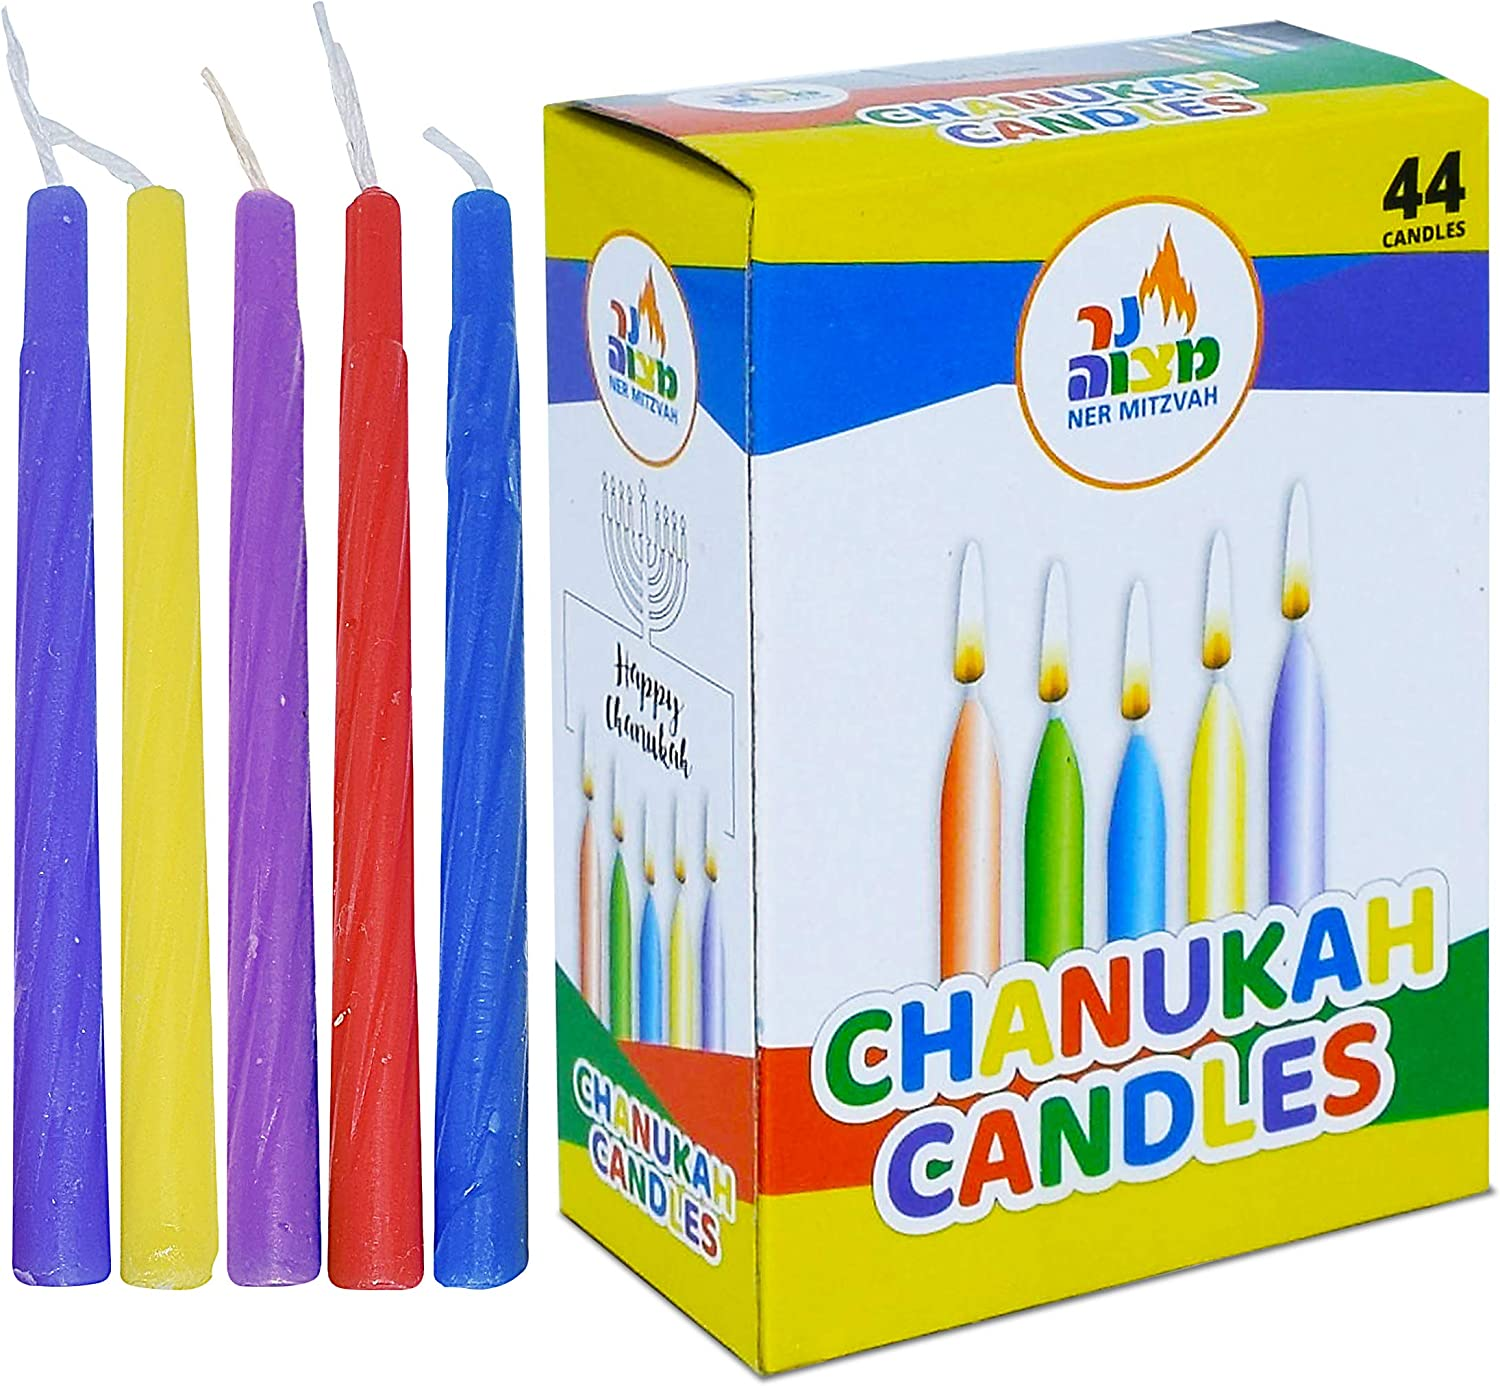 Premium Quality 135 Count Bulk Family Pack Standard Size Candle Fits Most Menorahs Ner Mitzvah Colorful Chanukah Candles Assorted Colors